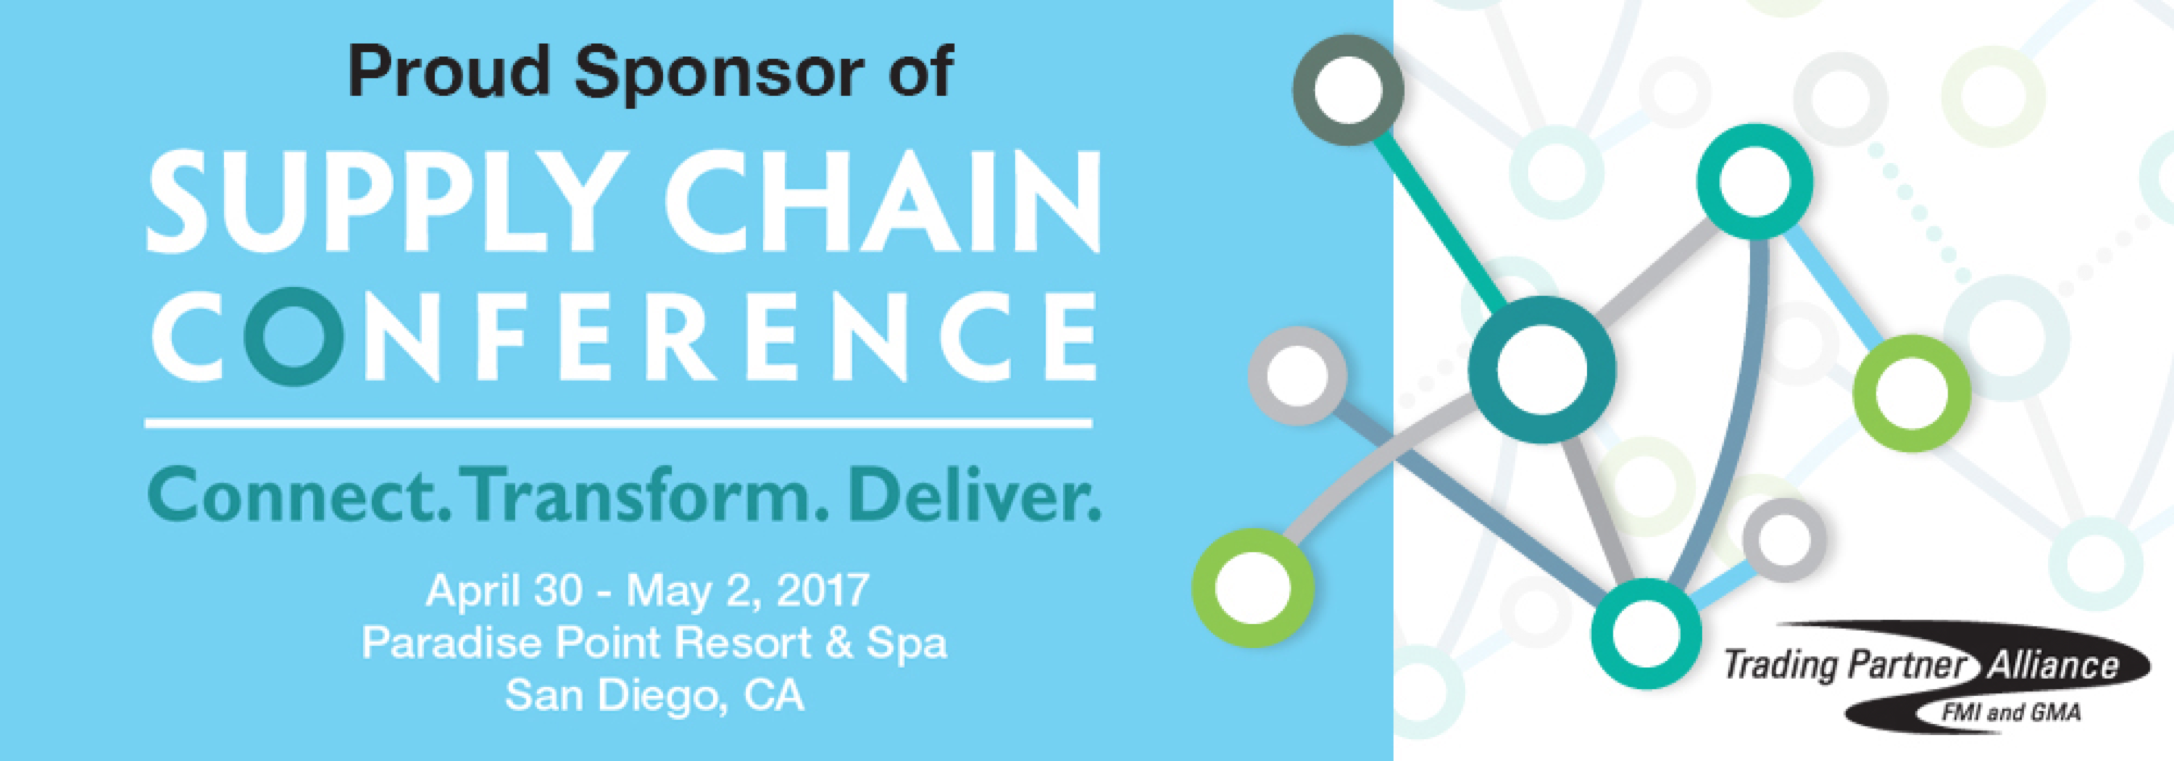 Supply Chain Visibility Among Major Themes at 2017 TPA Supply Chain Conference